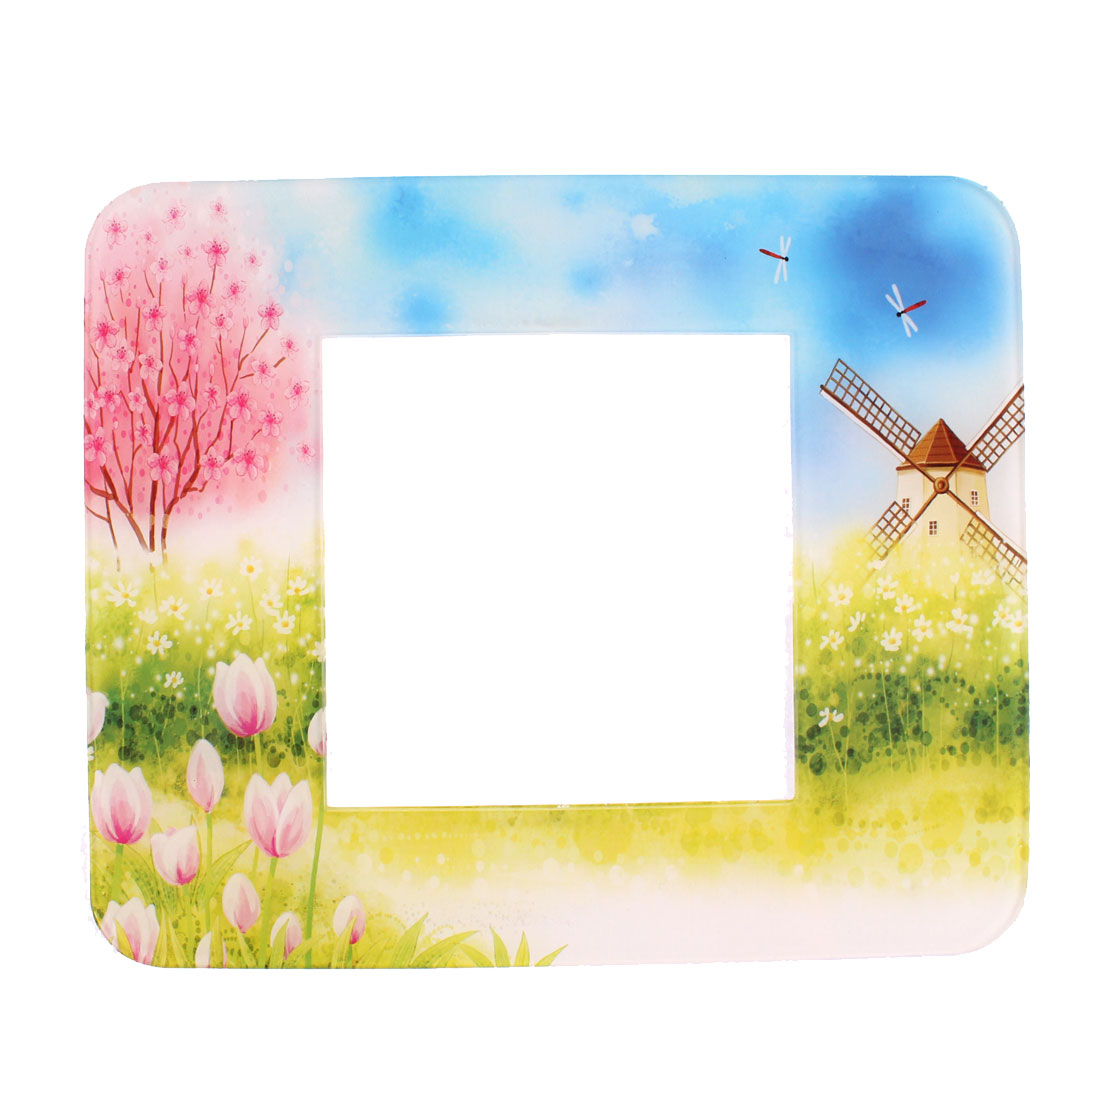 Home Wall Windmill Flowers Printed Switch Sticker Cover